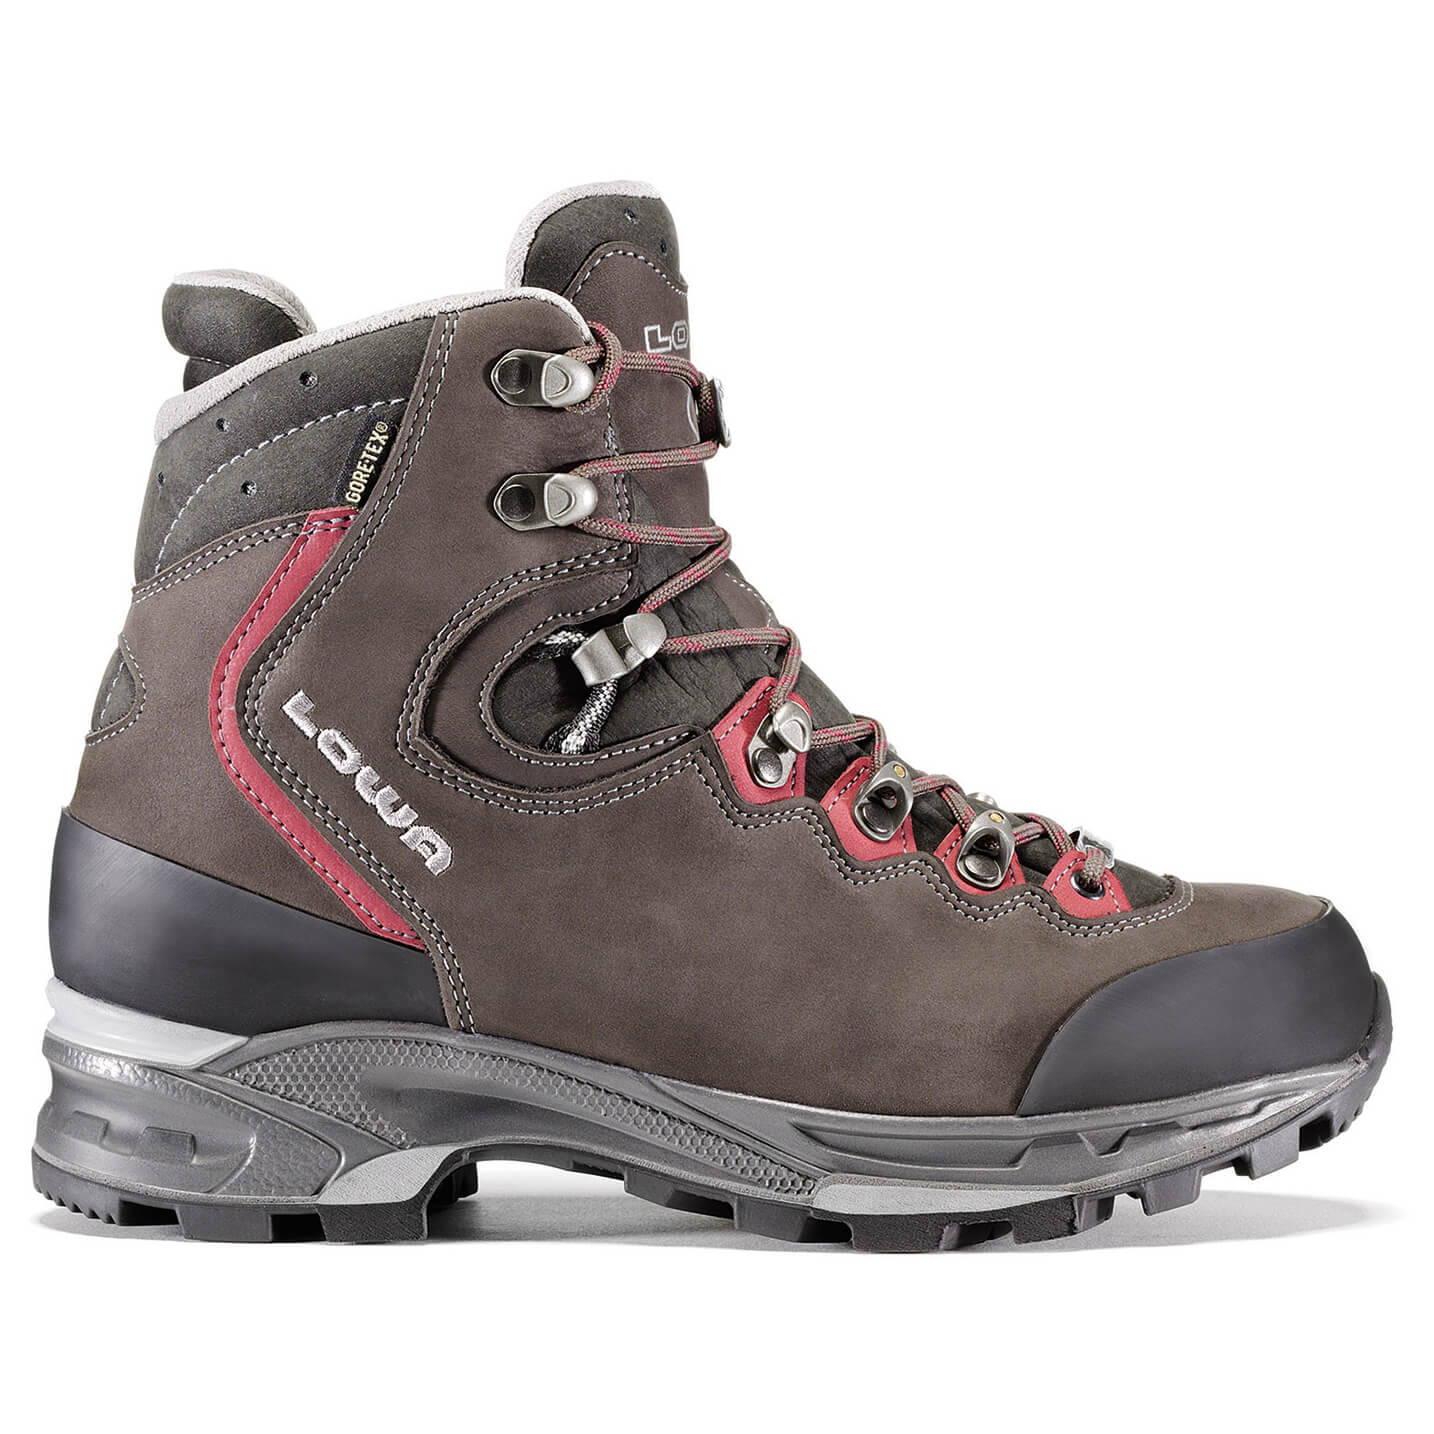 Creative From Short Day Hikes To Monthlong Treks, Having The Right Hiking Boots For Your Adventure Is Essential In General, Boots For Shorter Day Hikes Are Lighter Weight And Feature A Lower Cut However, Th